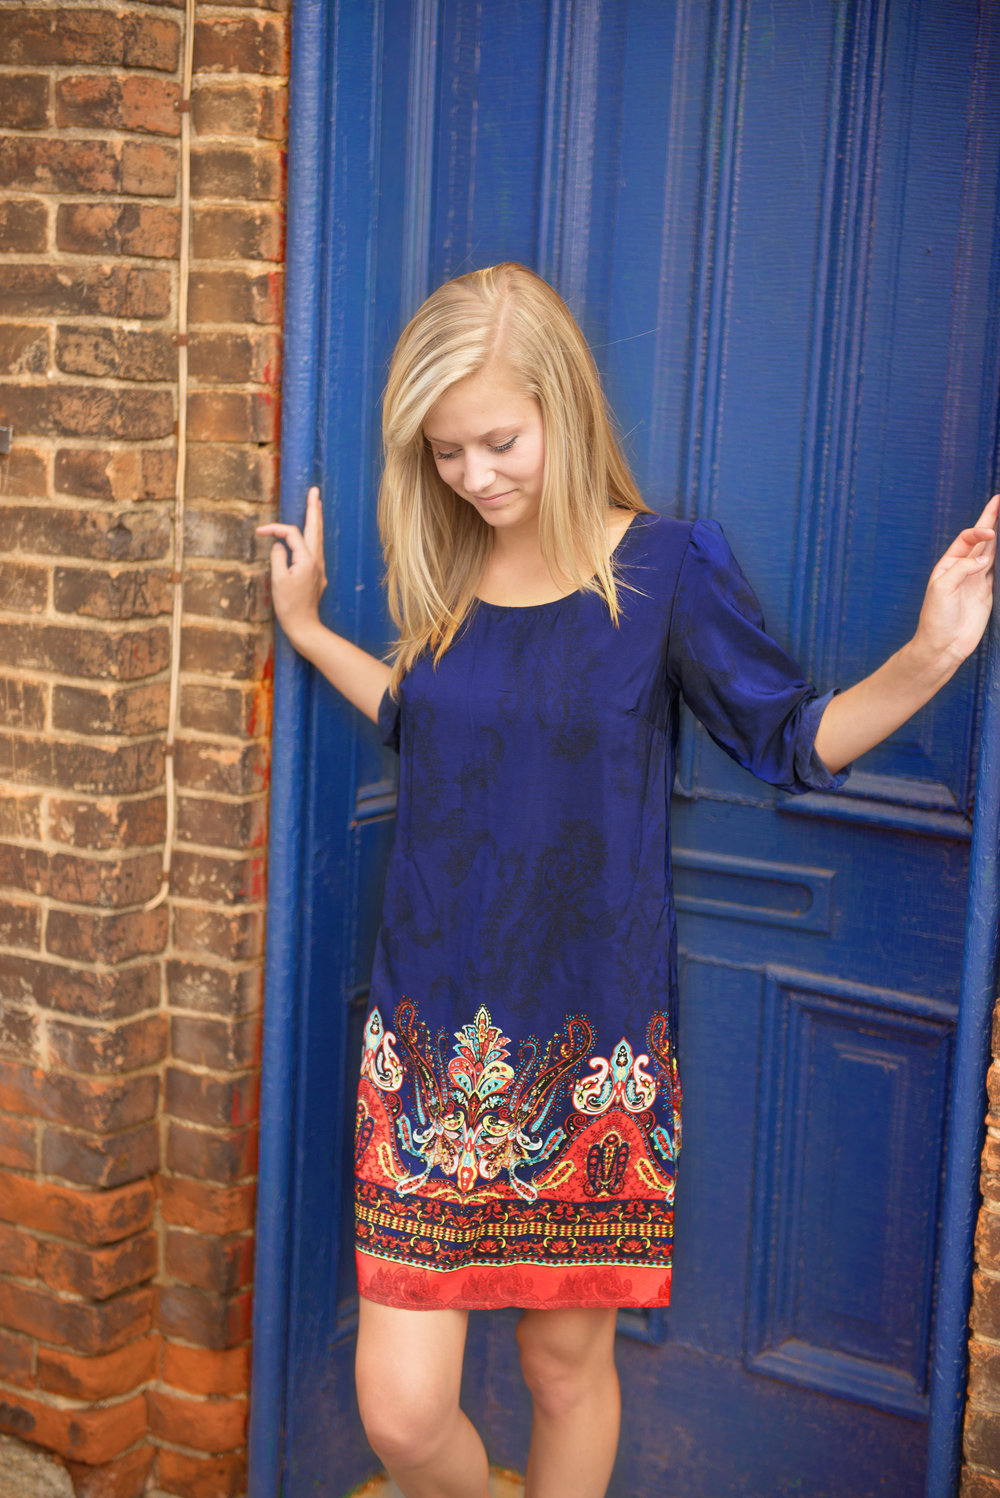 orlando-senior-girl-dress-door-bricks.jpg